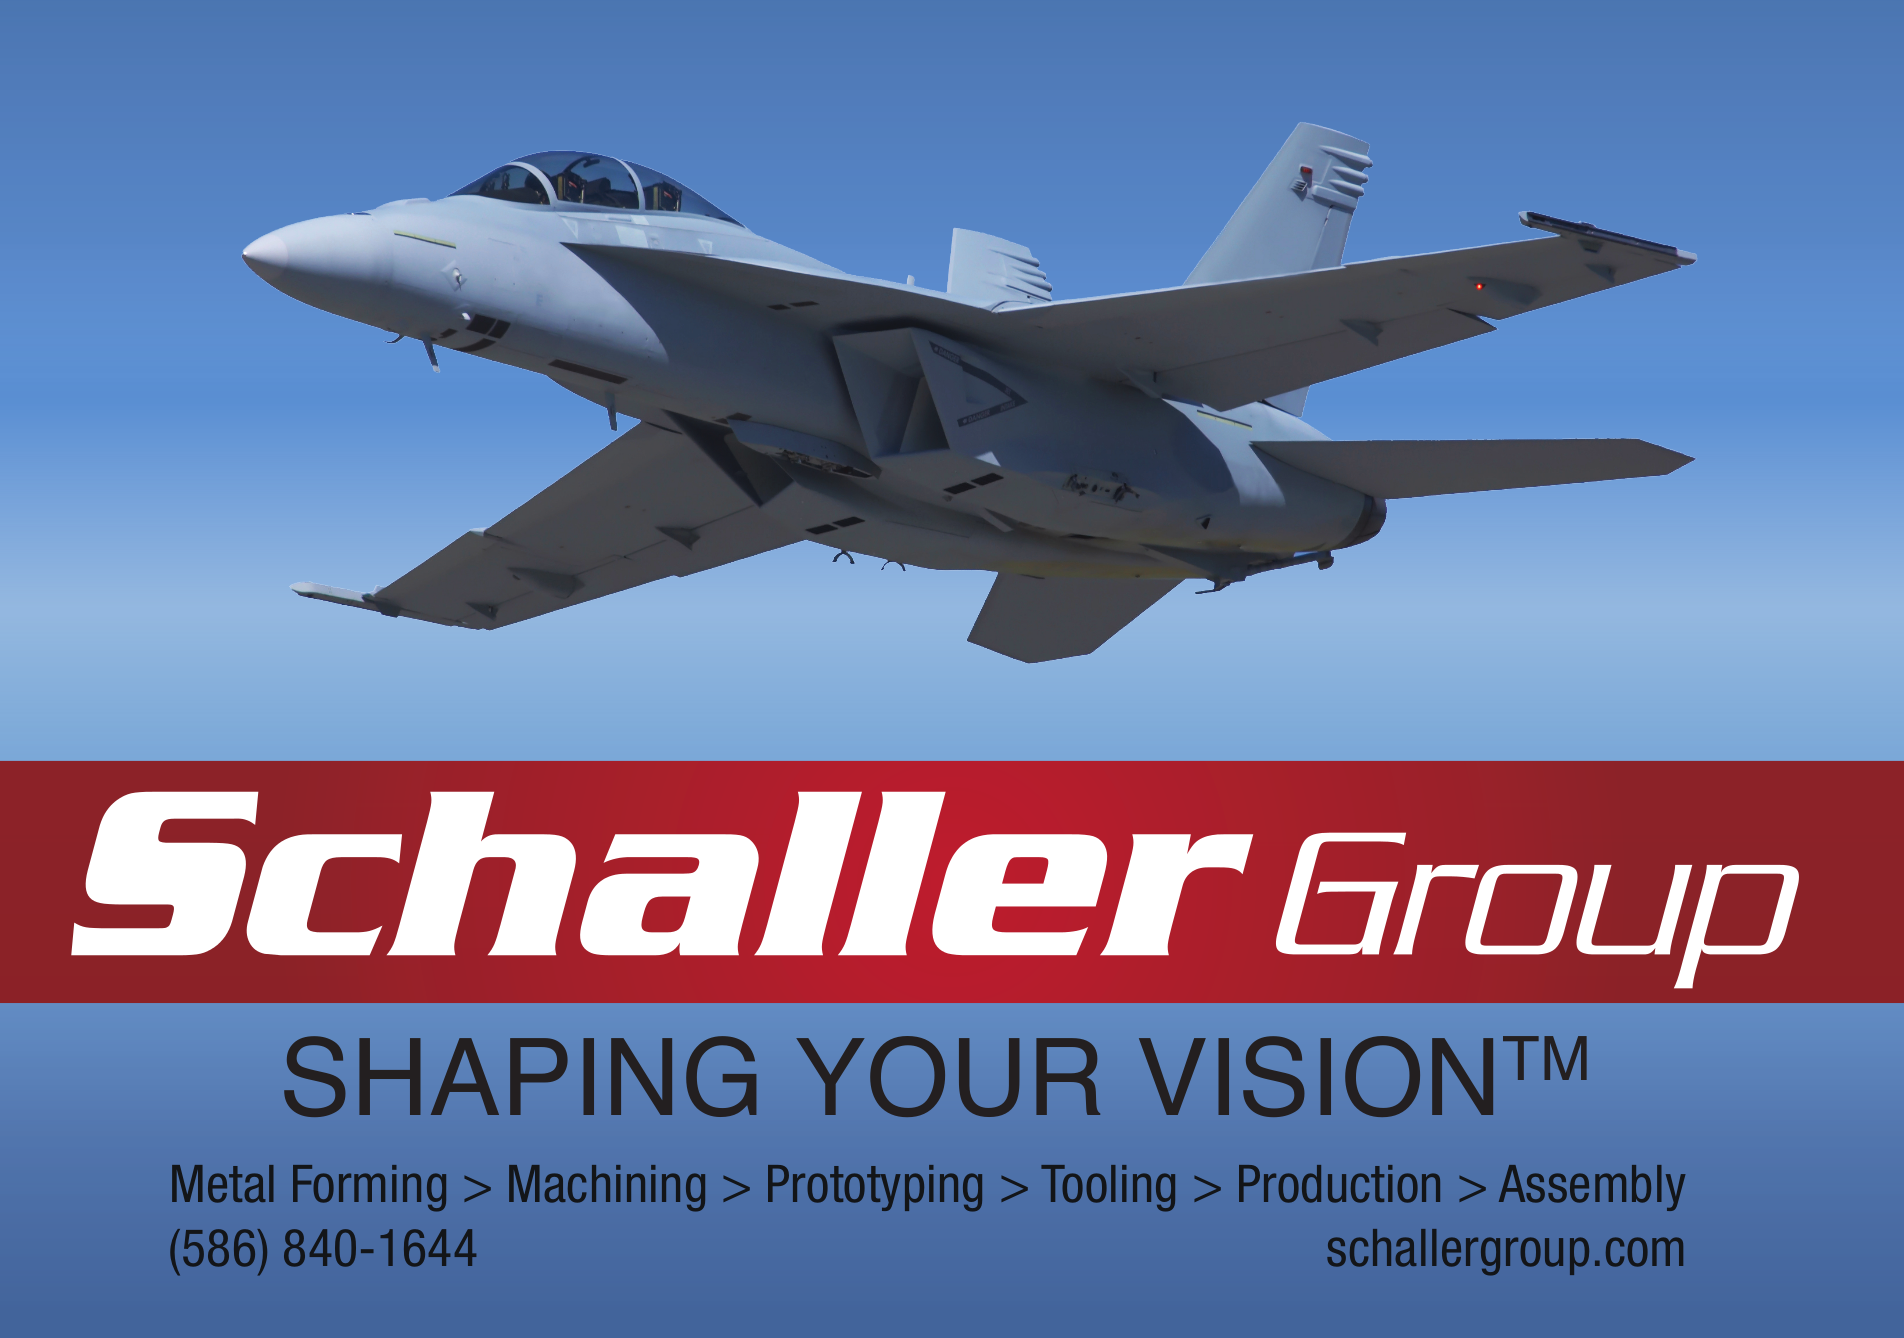 Schaller Group